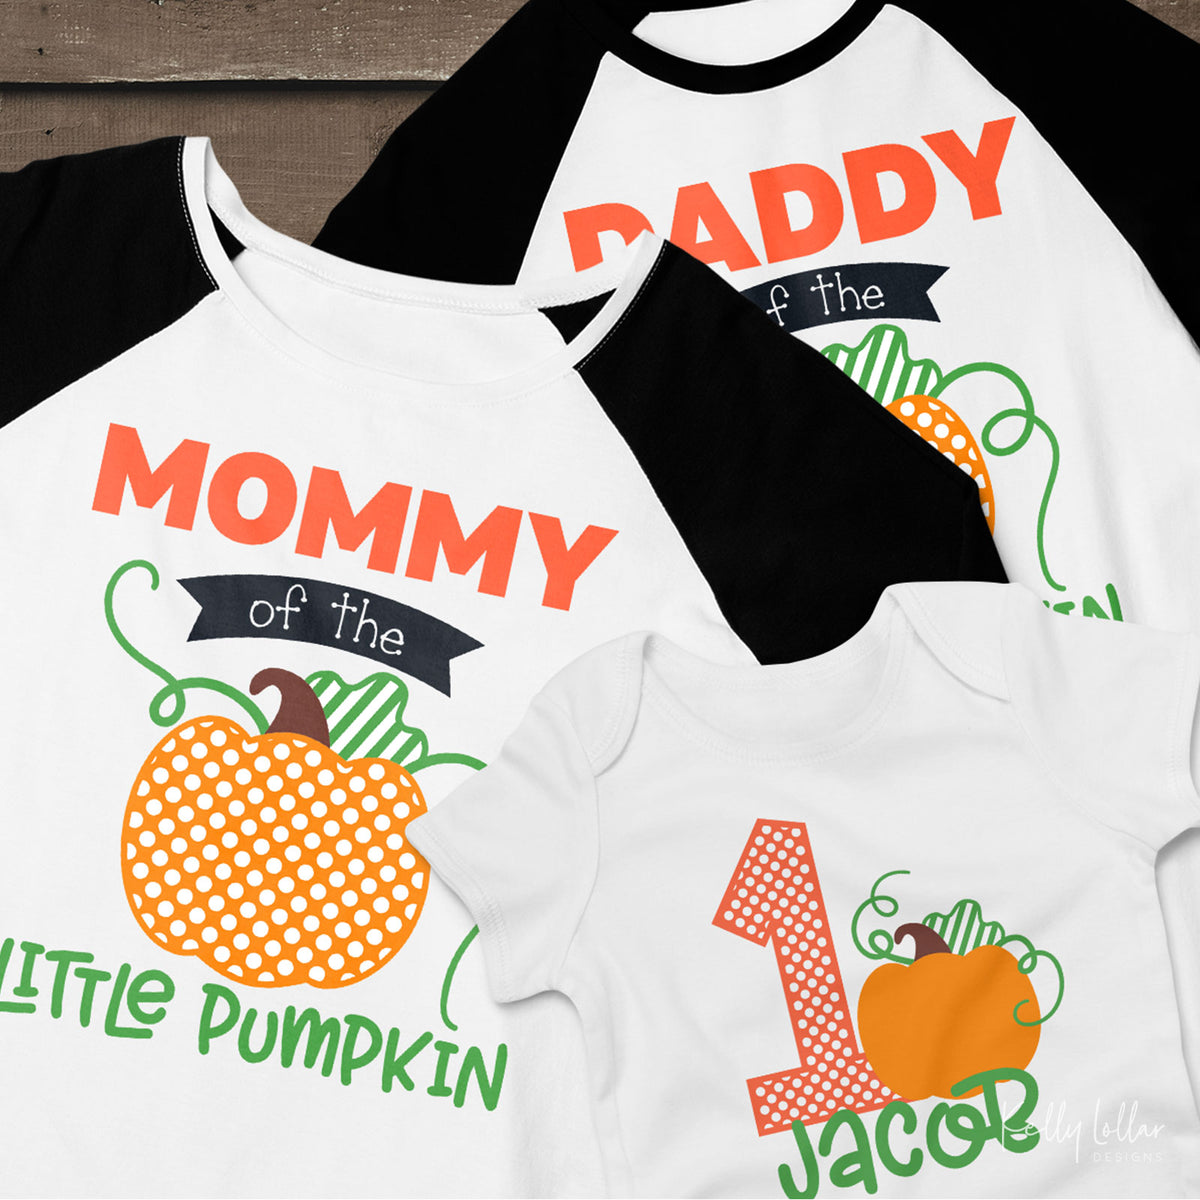 Little Pumpkin Birthday Set | Baby & Toddler Fall Birthday Sets with Matching Mommy and Daddy Shirt Designs  | SVG DXF PNG Cut Files